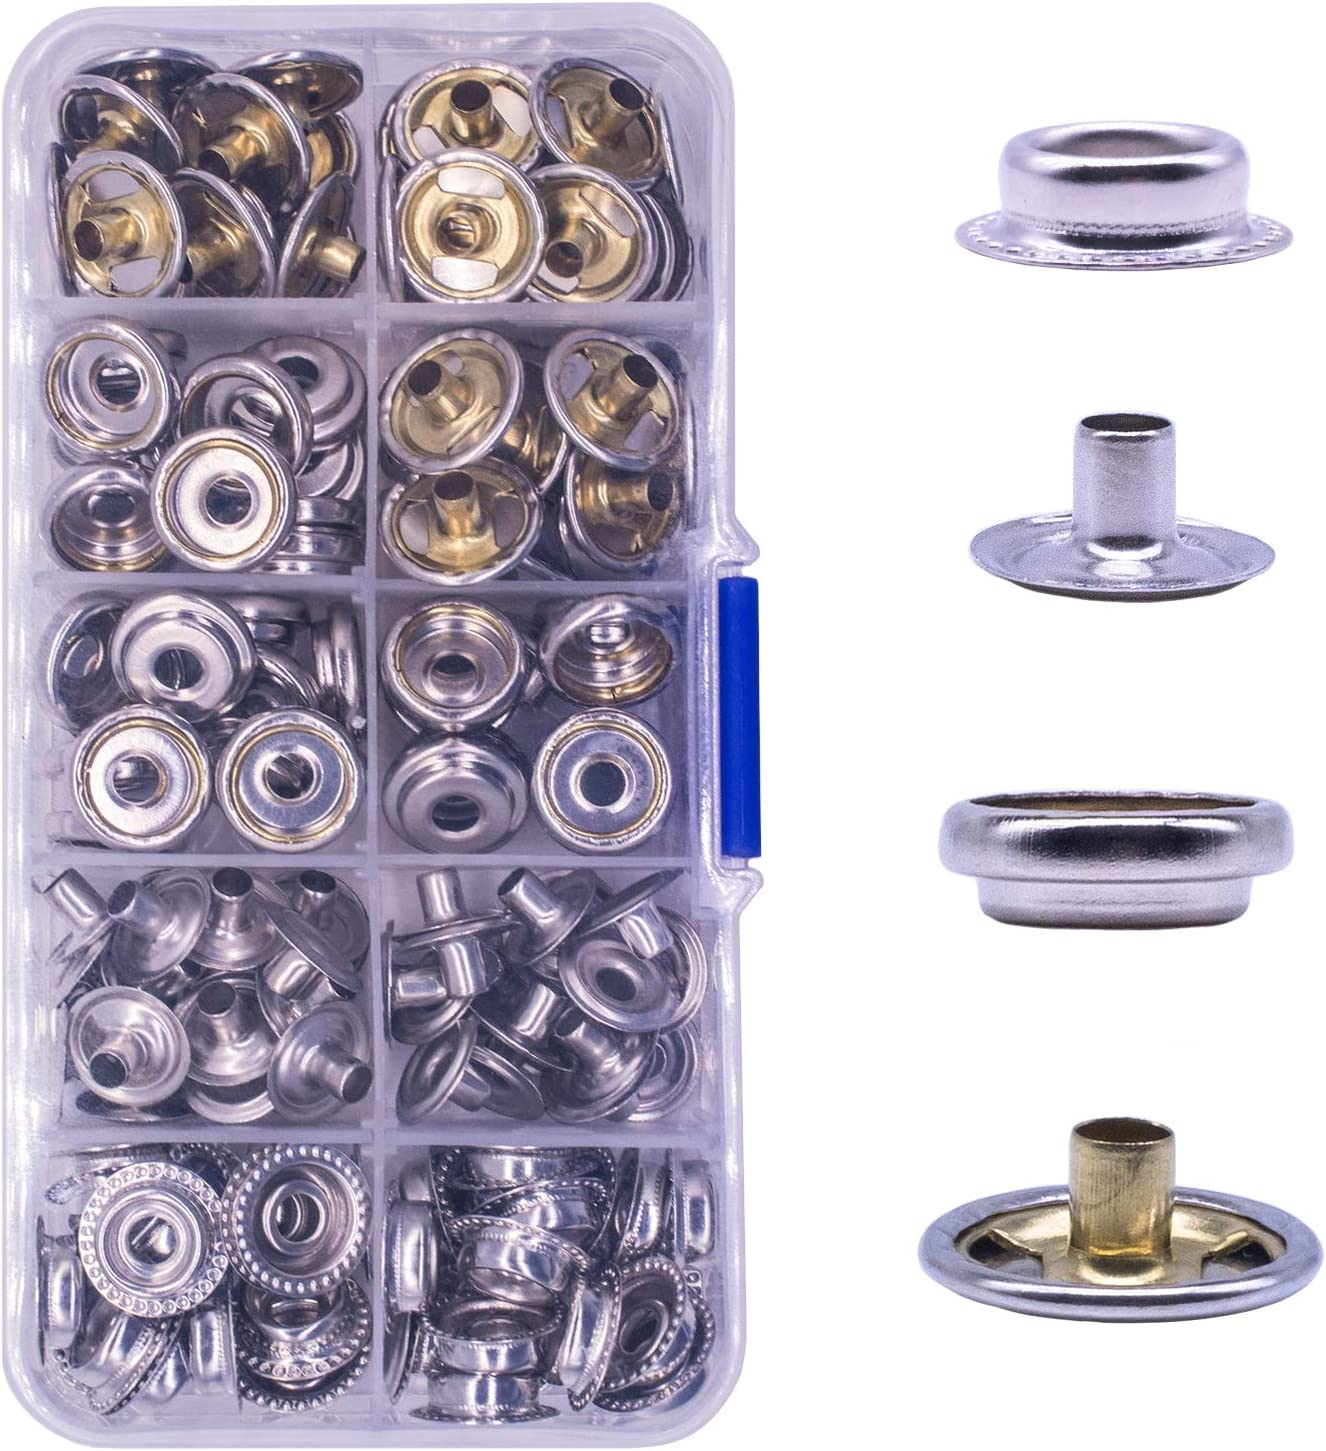 100pcs Fastener Snap Press Stud Cap Button Marine Boat Canvas Stainless Steel US